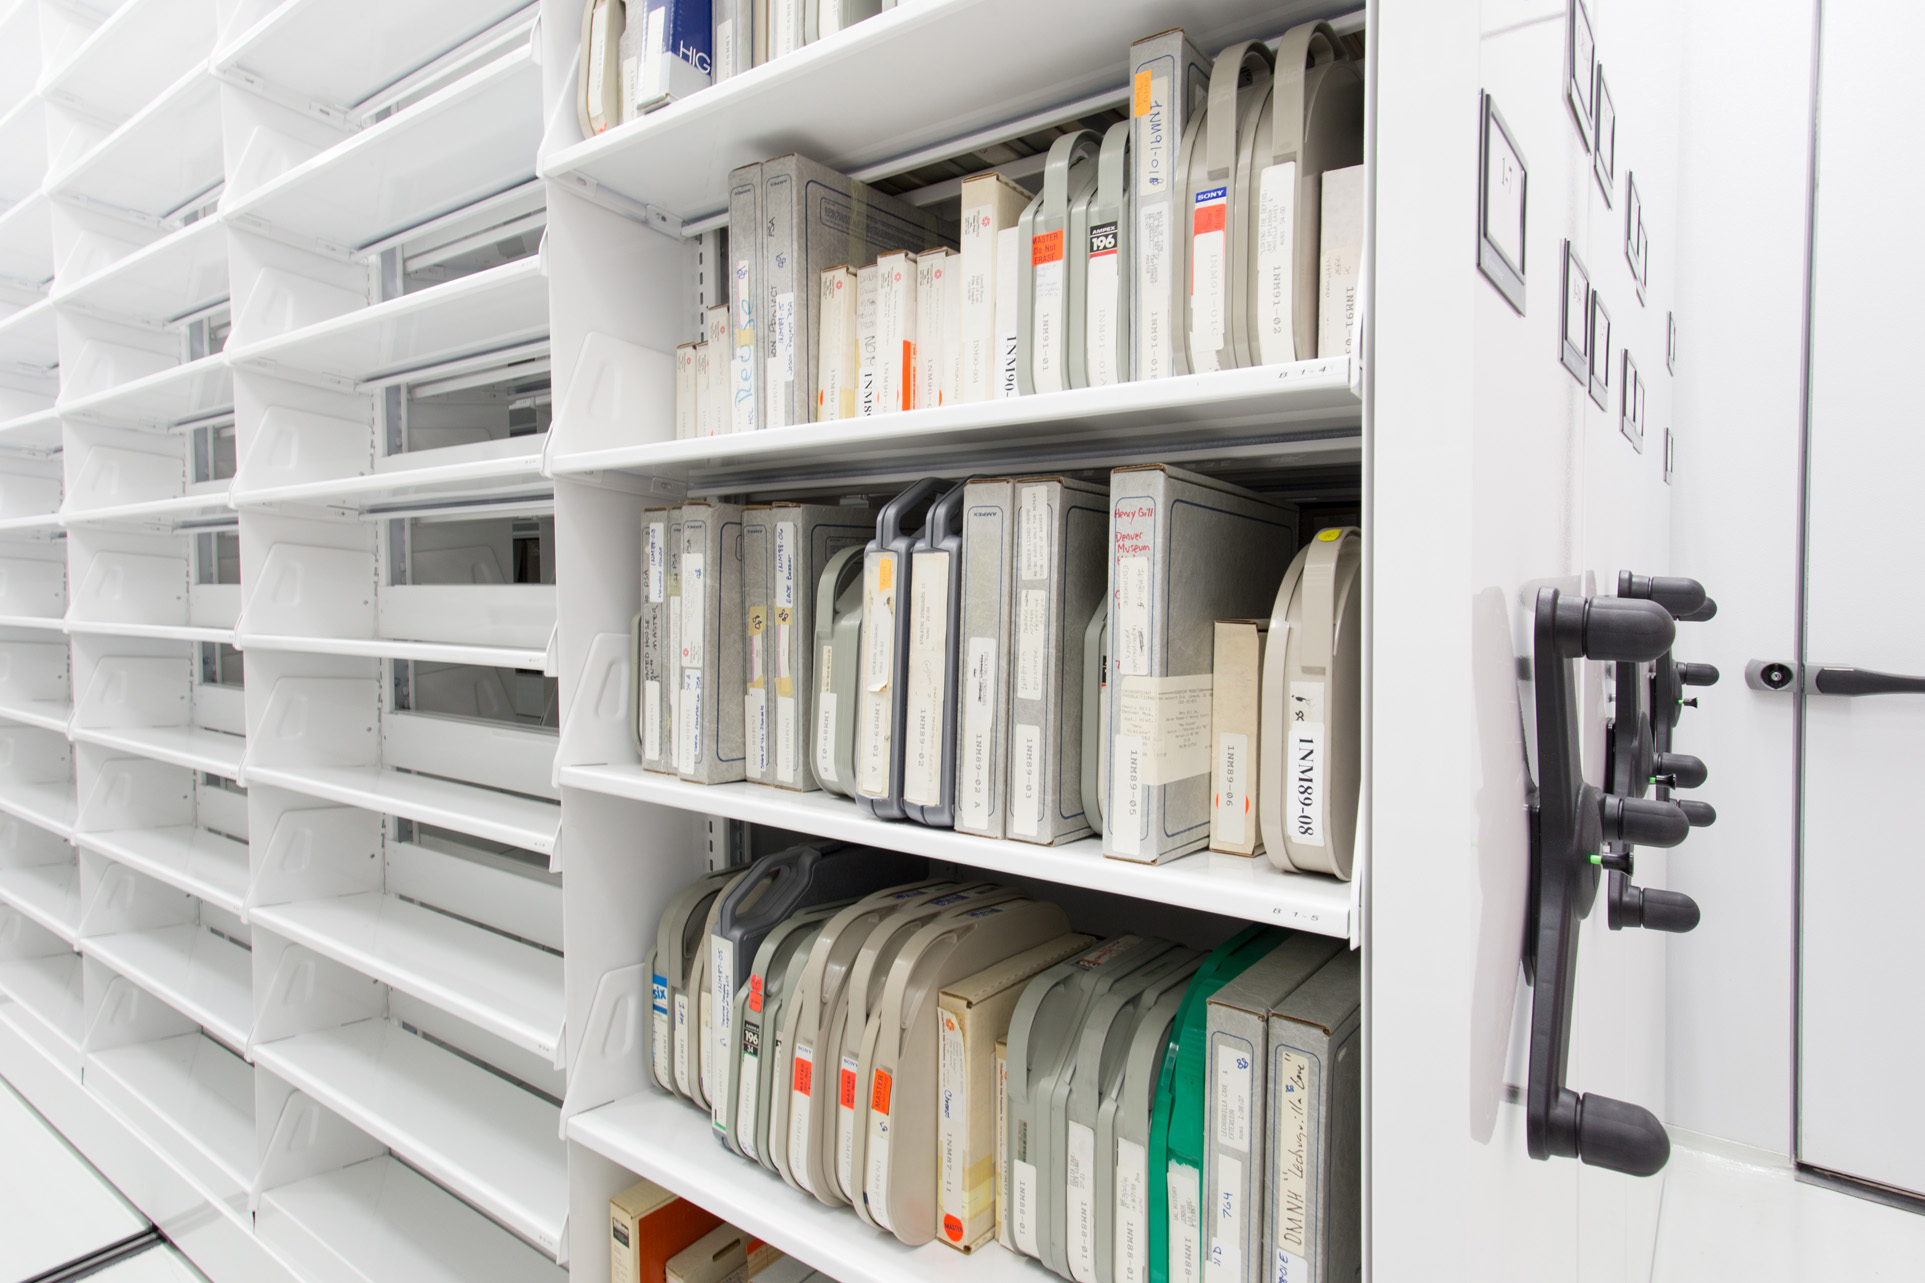 climate-controlled-cold-storage-film-archive-spacesaver-compactor-museum-preservation